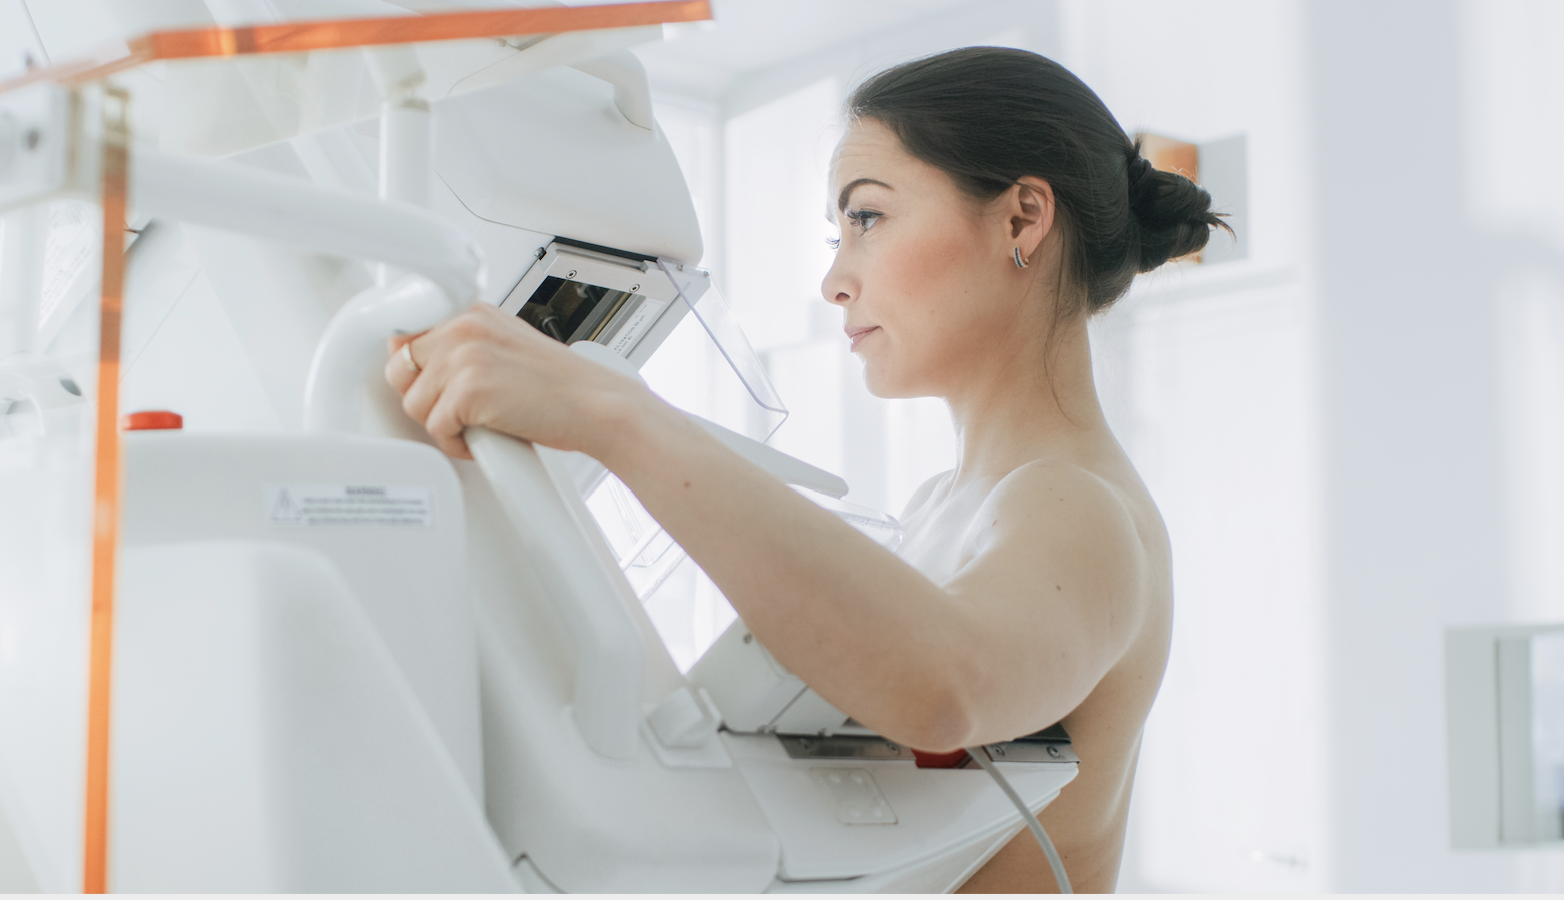 While the Mammography Quality Standards Act (MQSA) and the introduction of EQUIP (Enhancing Quality Using the Inspection Program) have been successful in standardizing and enhancing mammographic imaging quality, inadequate breast positioning can dramatically impact the ability of radiologists and technicians to quickly and accurately detect breast cancer and potentially malignant lesions in their patients